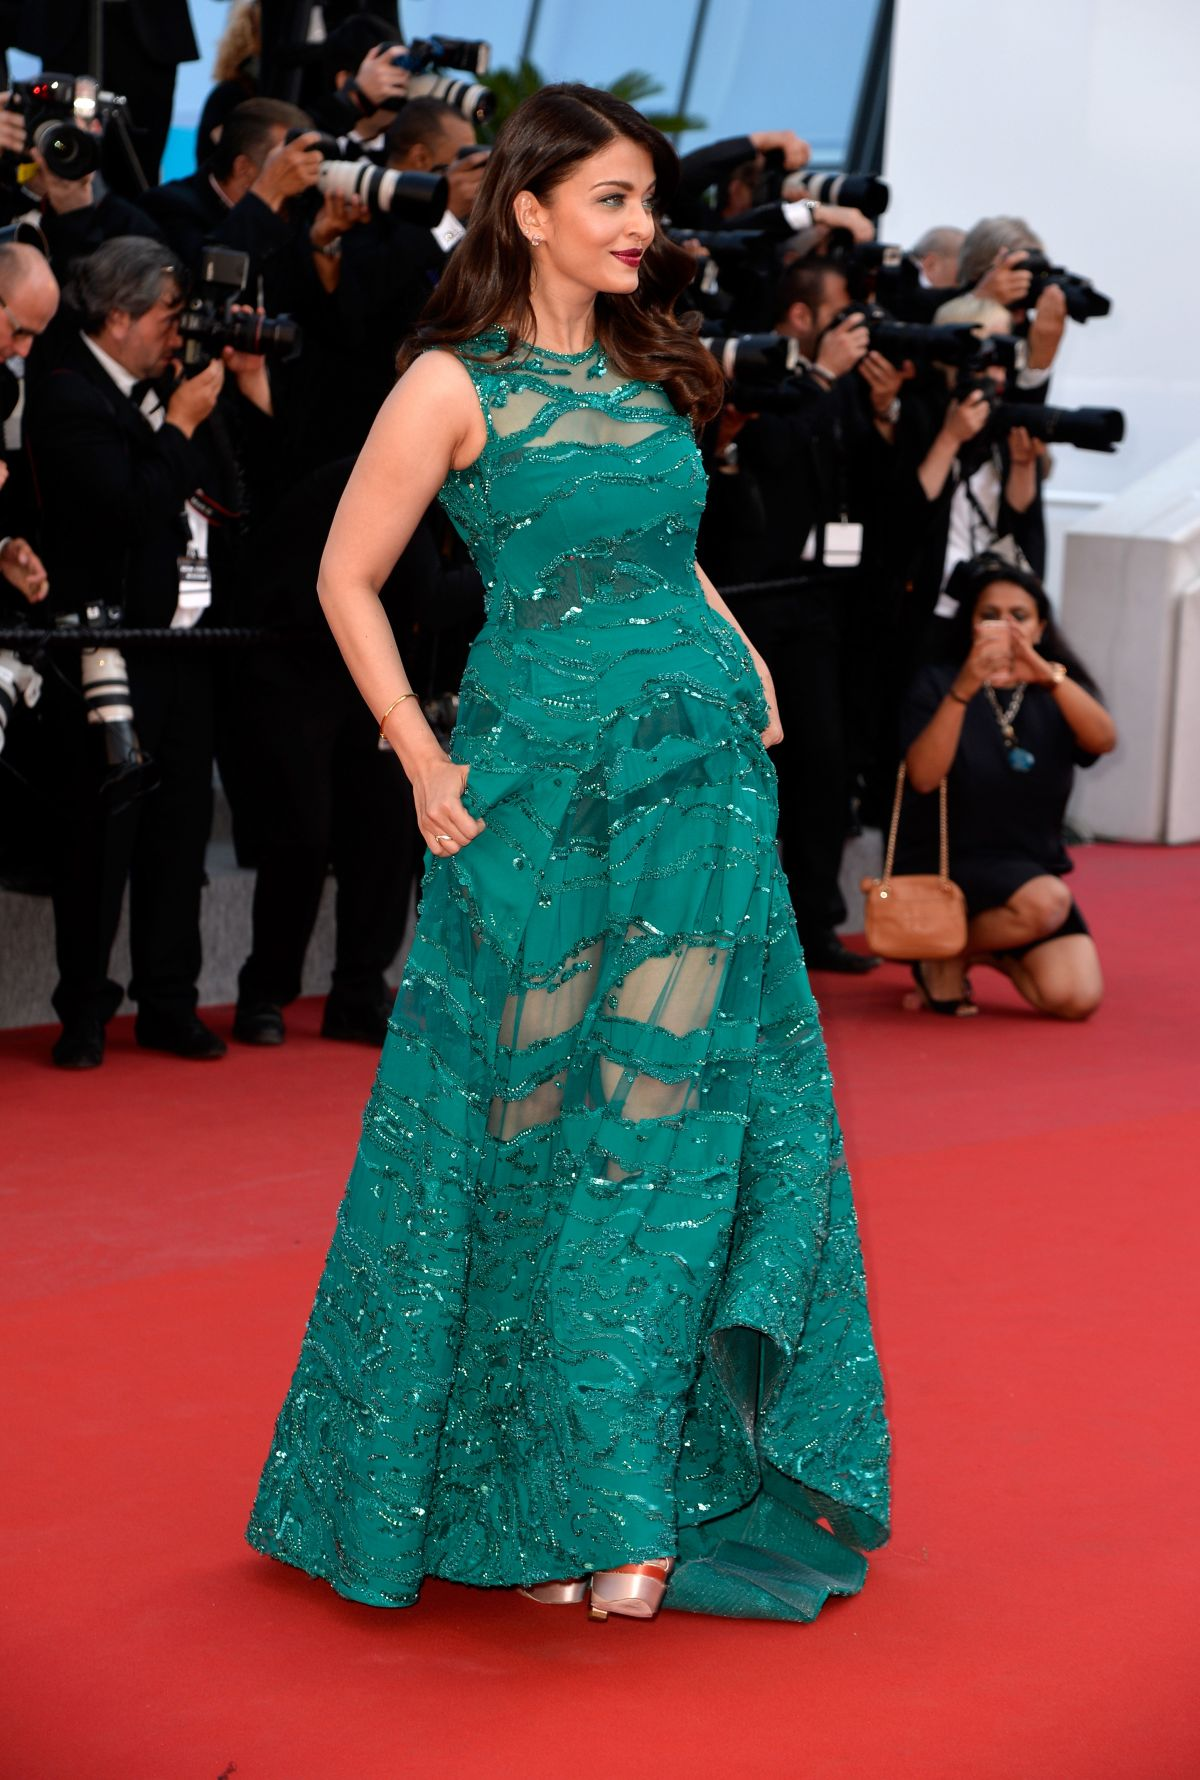 Aishwarya rai latest photos after pregnancy 2016 Best Double Strollers For Newborn and Toddler